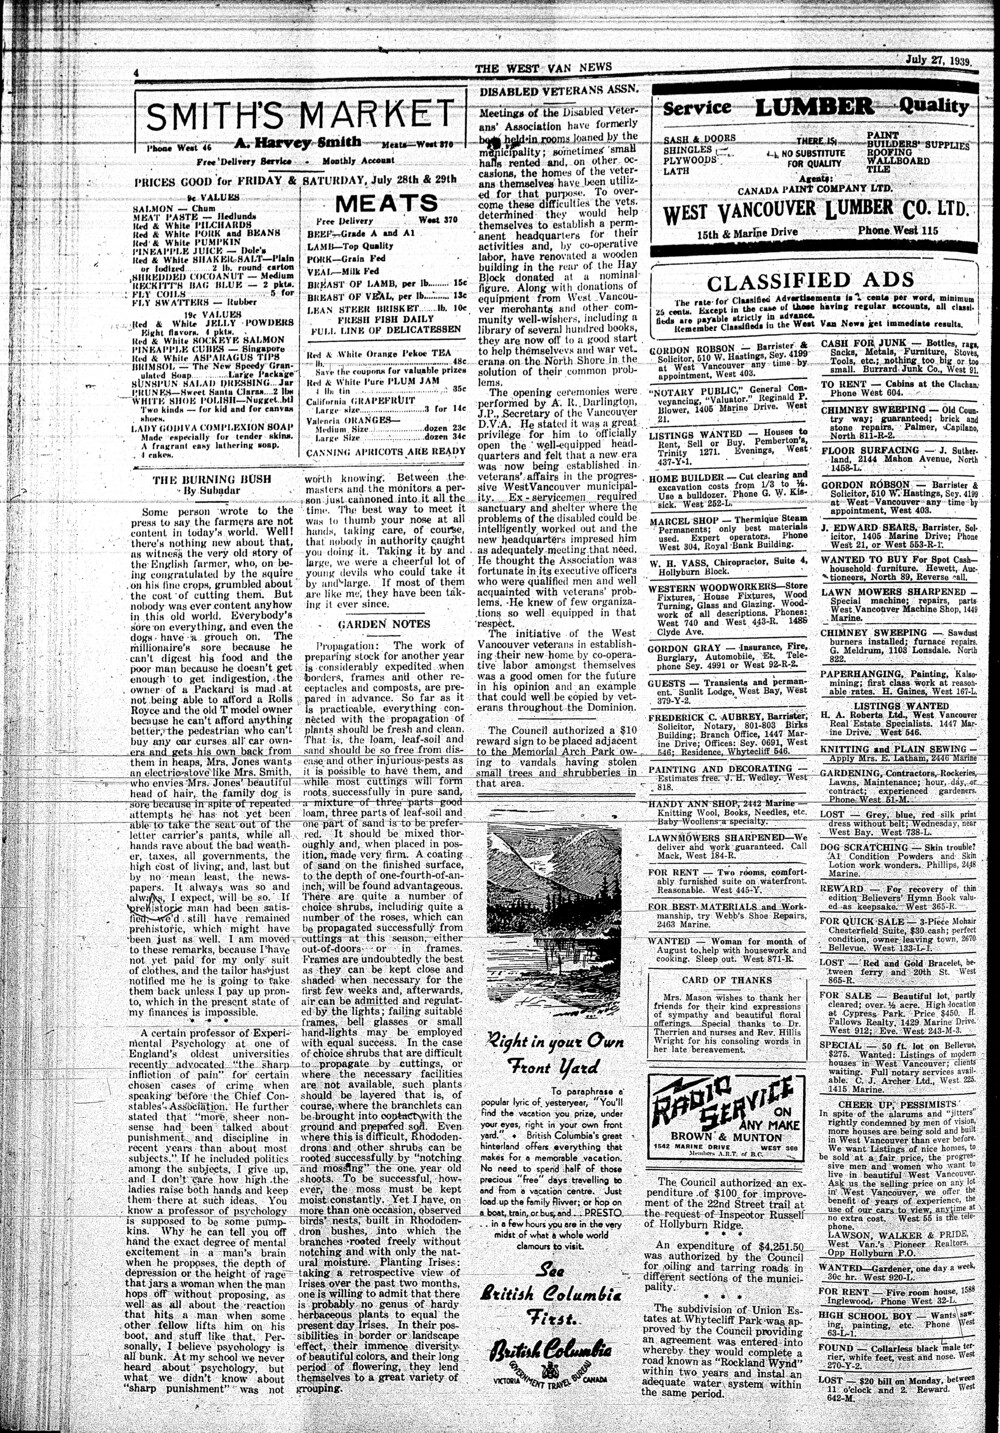 West Van. News (West Vancouver), 27 Jul 1939